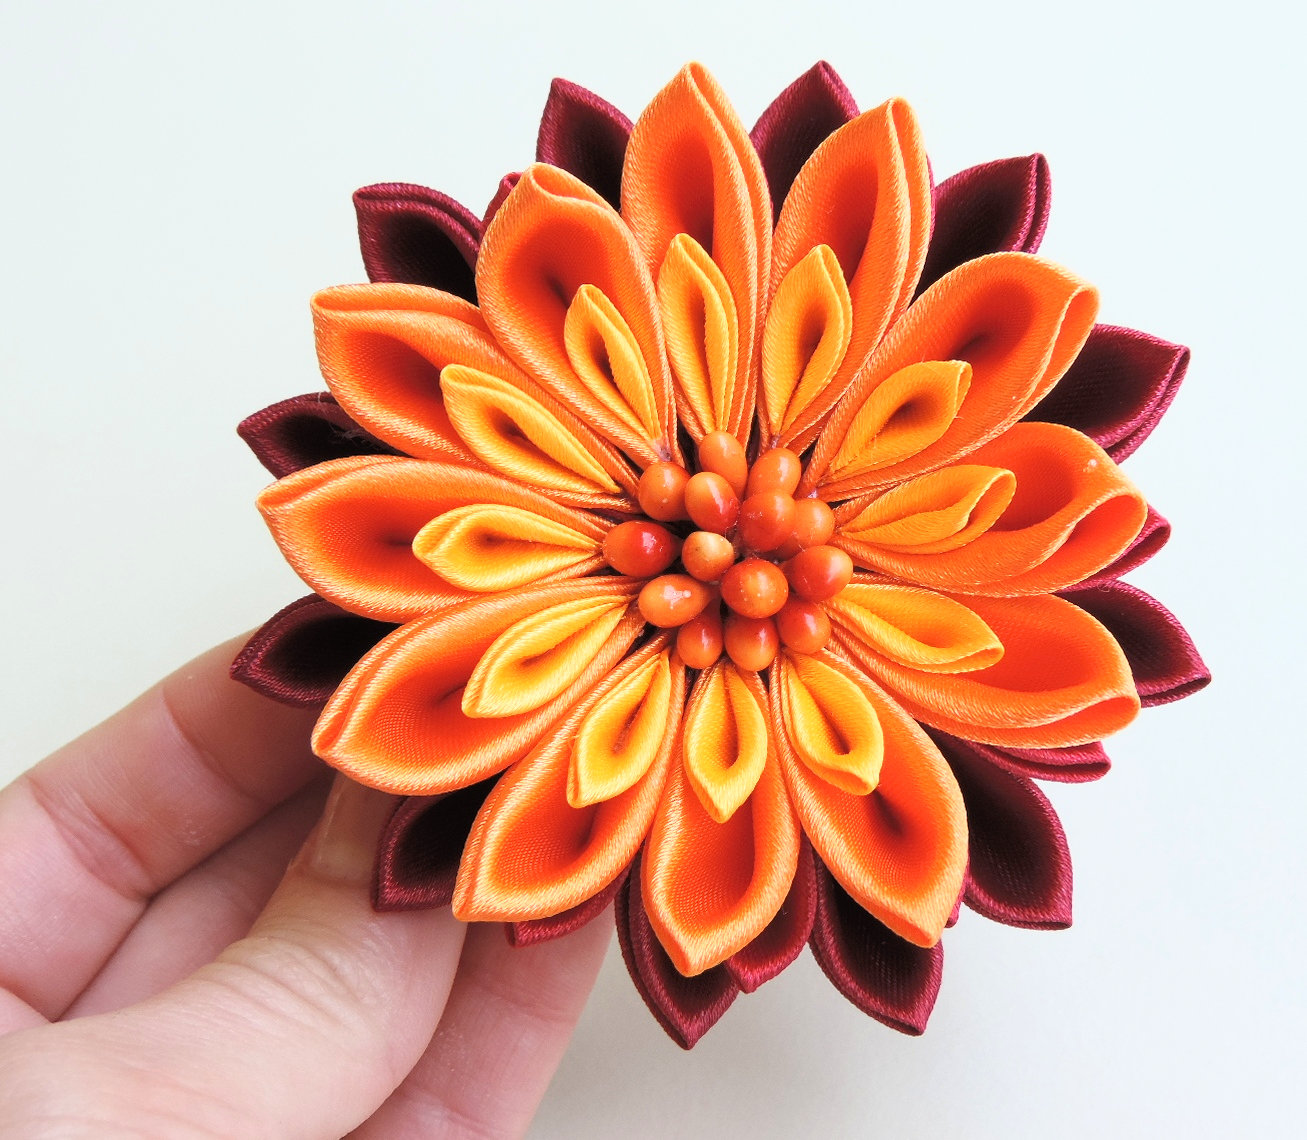 Fiery satin chrysanthemum - DIY tutorial